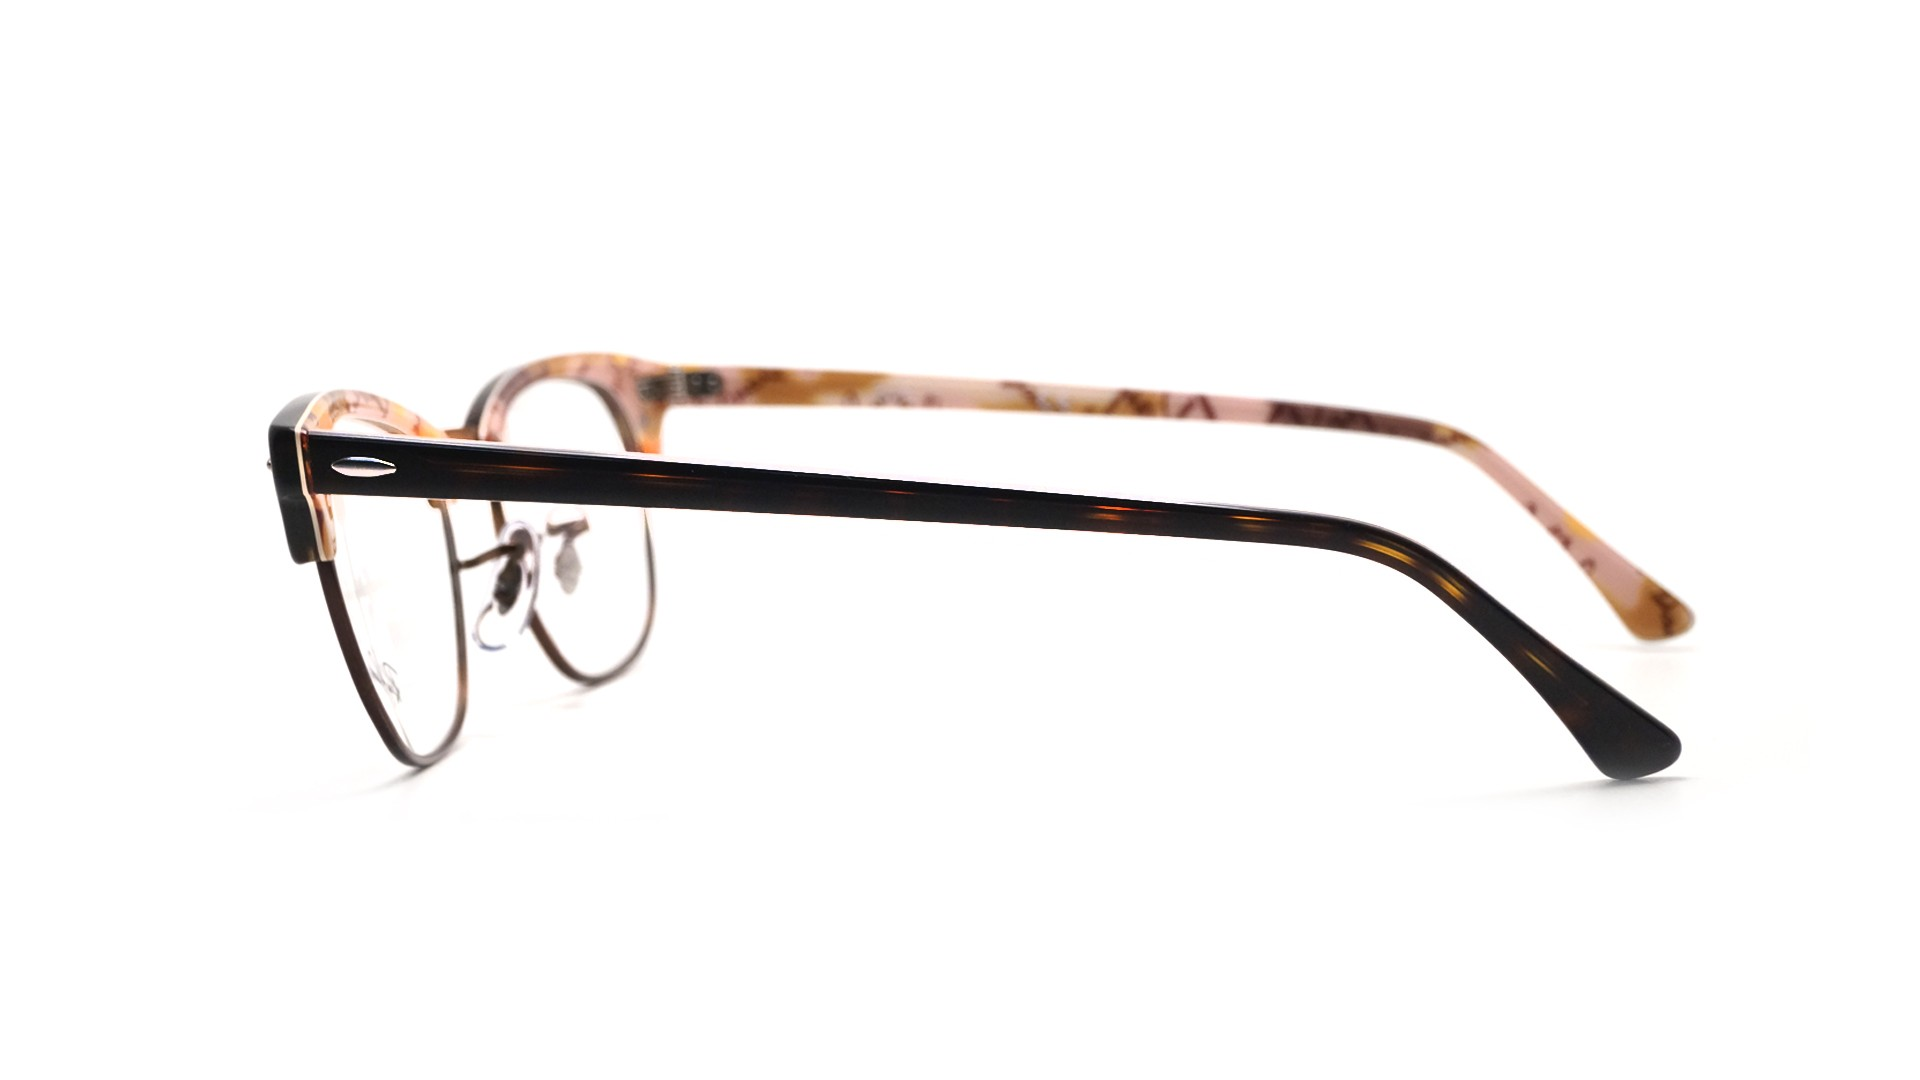 Lunettes de vue Ray-Ban Clubmaster Écaille RX5154 RB5154 5650 51-21   Prix  89,90 €   Visiofactory 1b4449a4f8f1